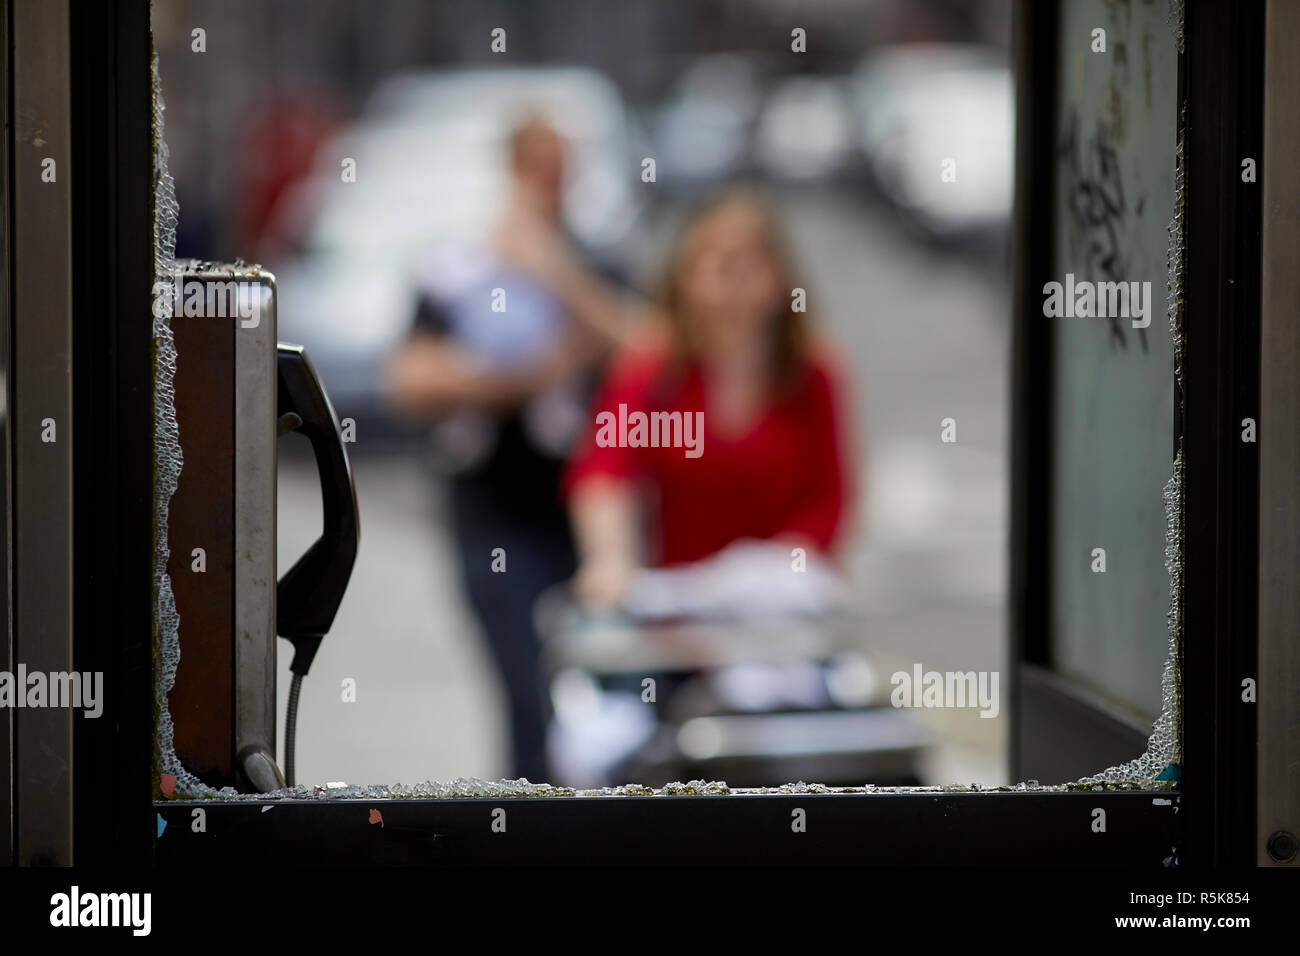 Liverpool city centre telephone kiosk box glass window smashed by vandals - Stock Image